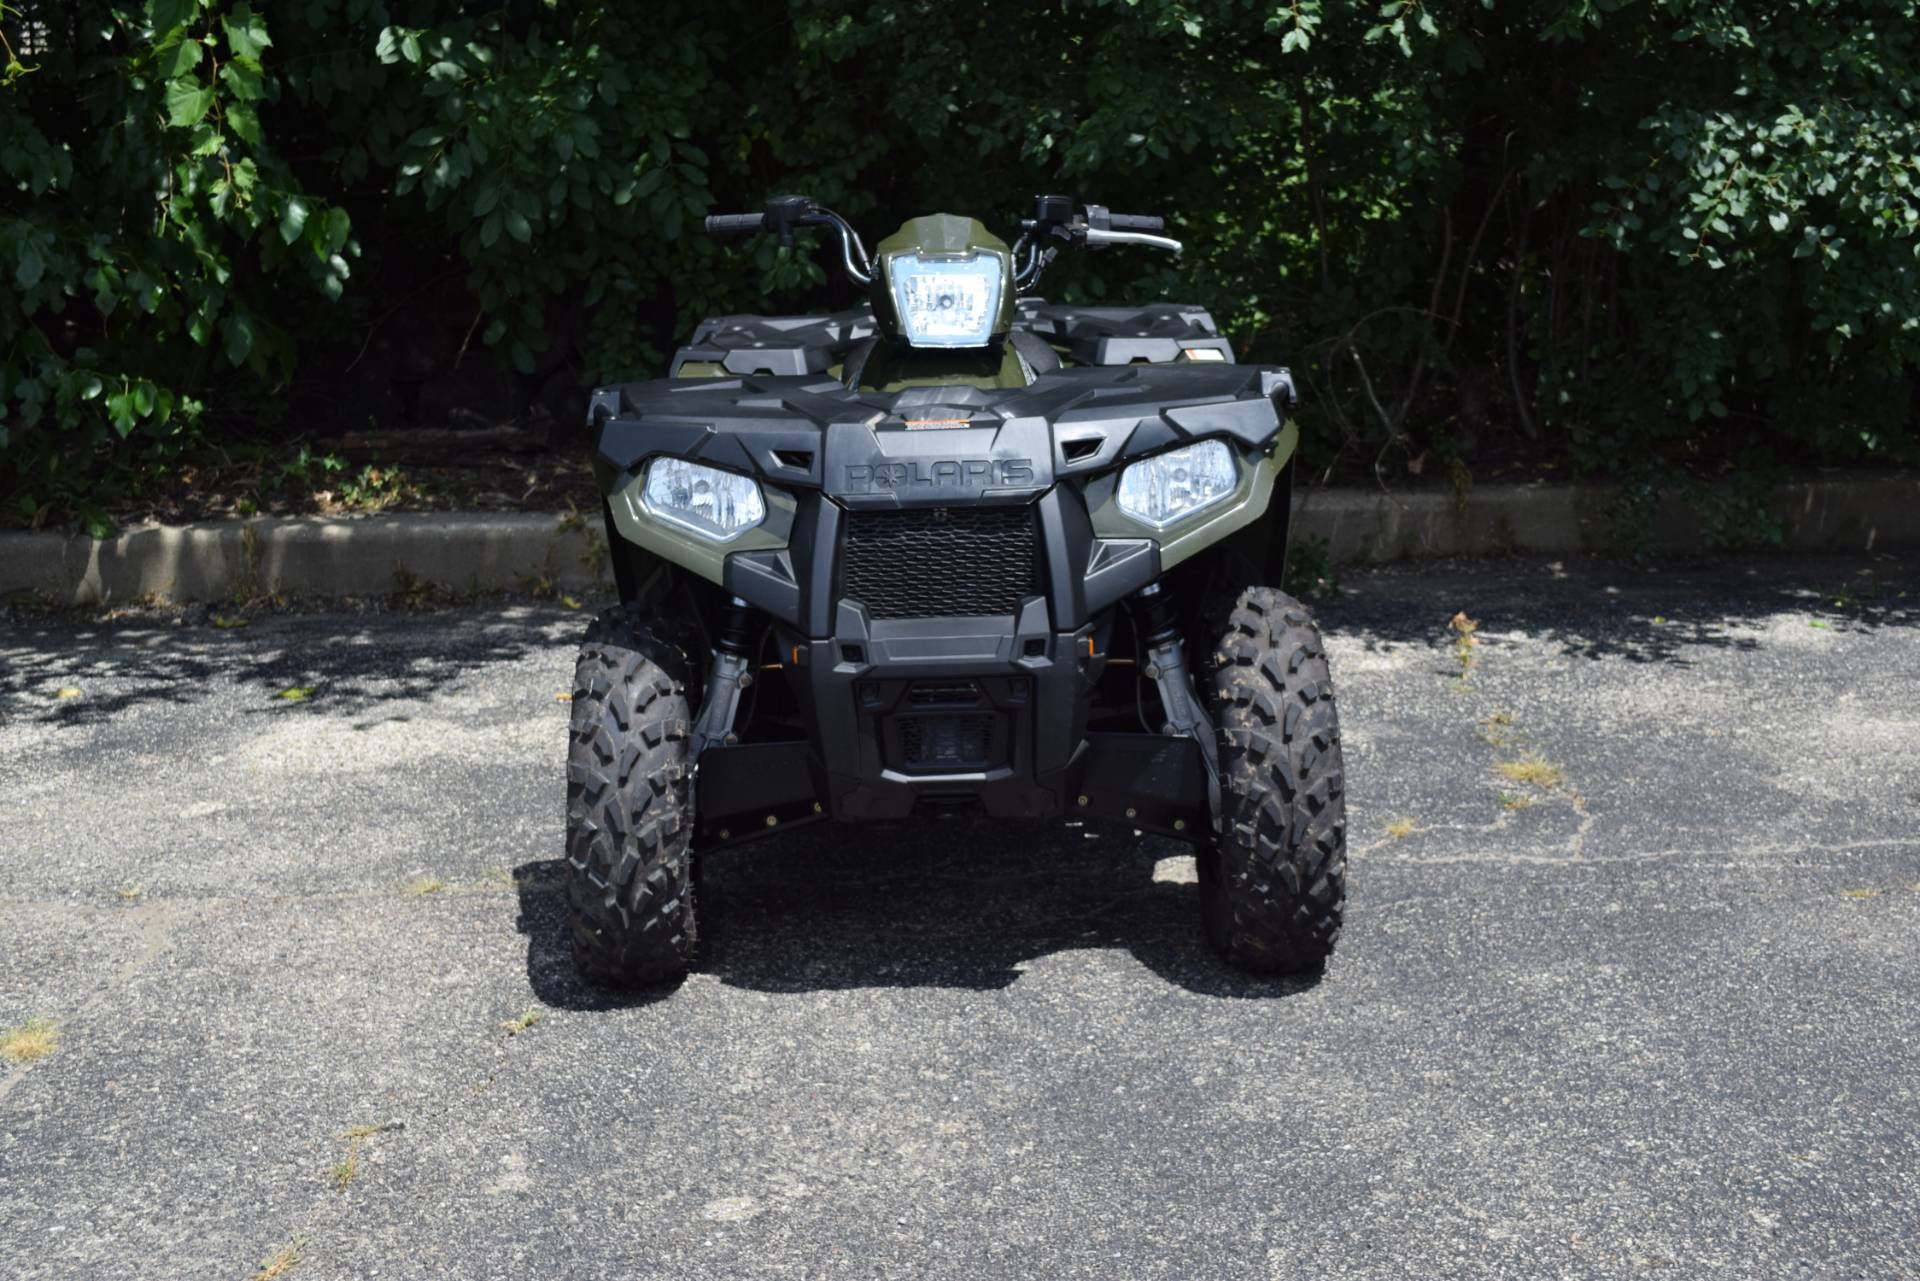 2016 Polaris Sportsman 570 in Wauconda, Illinois - Photo 9